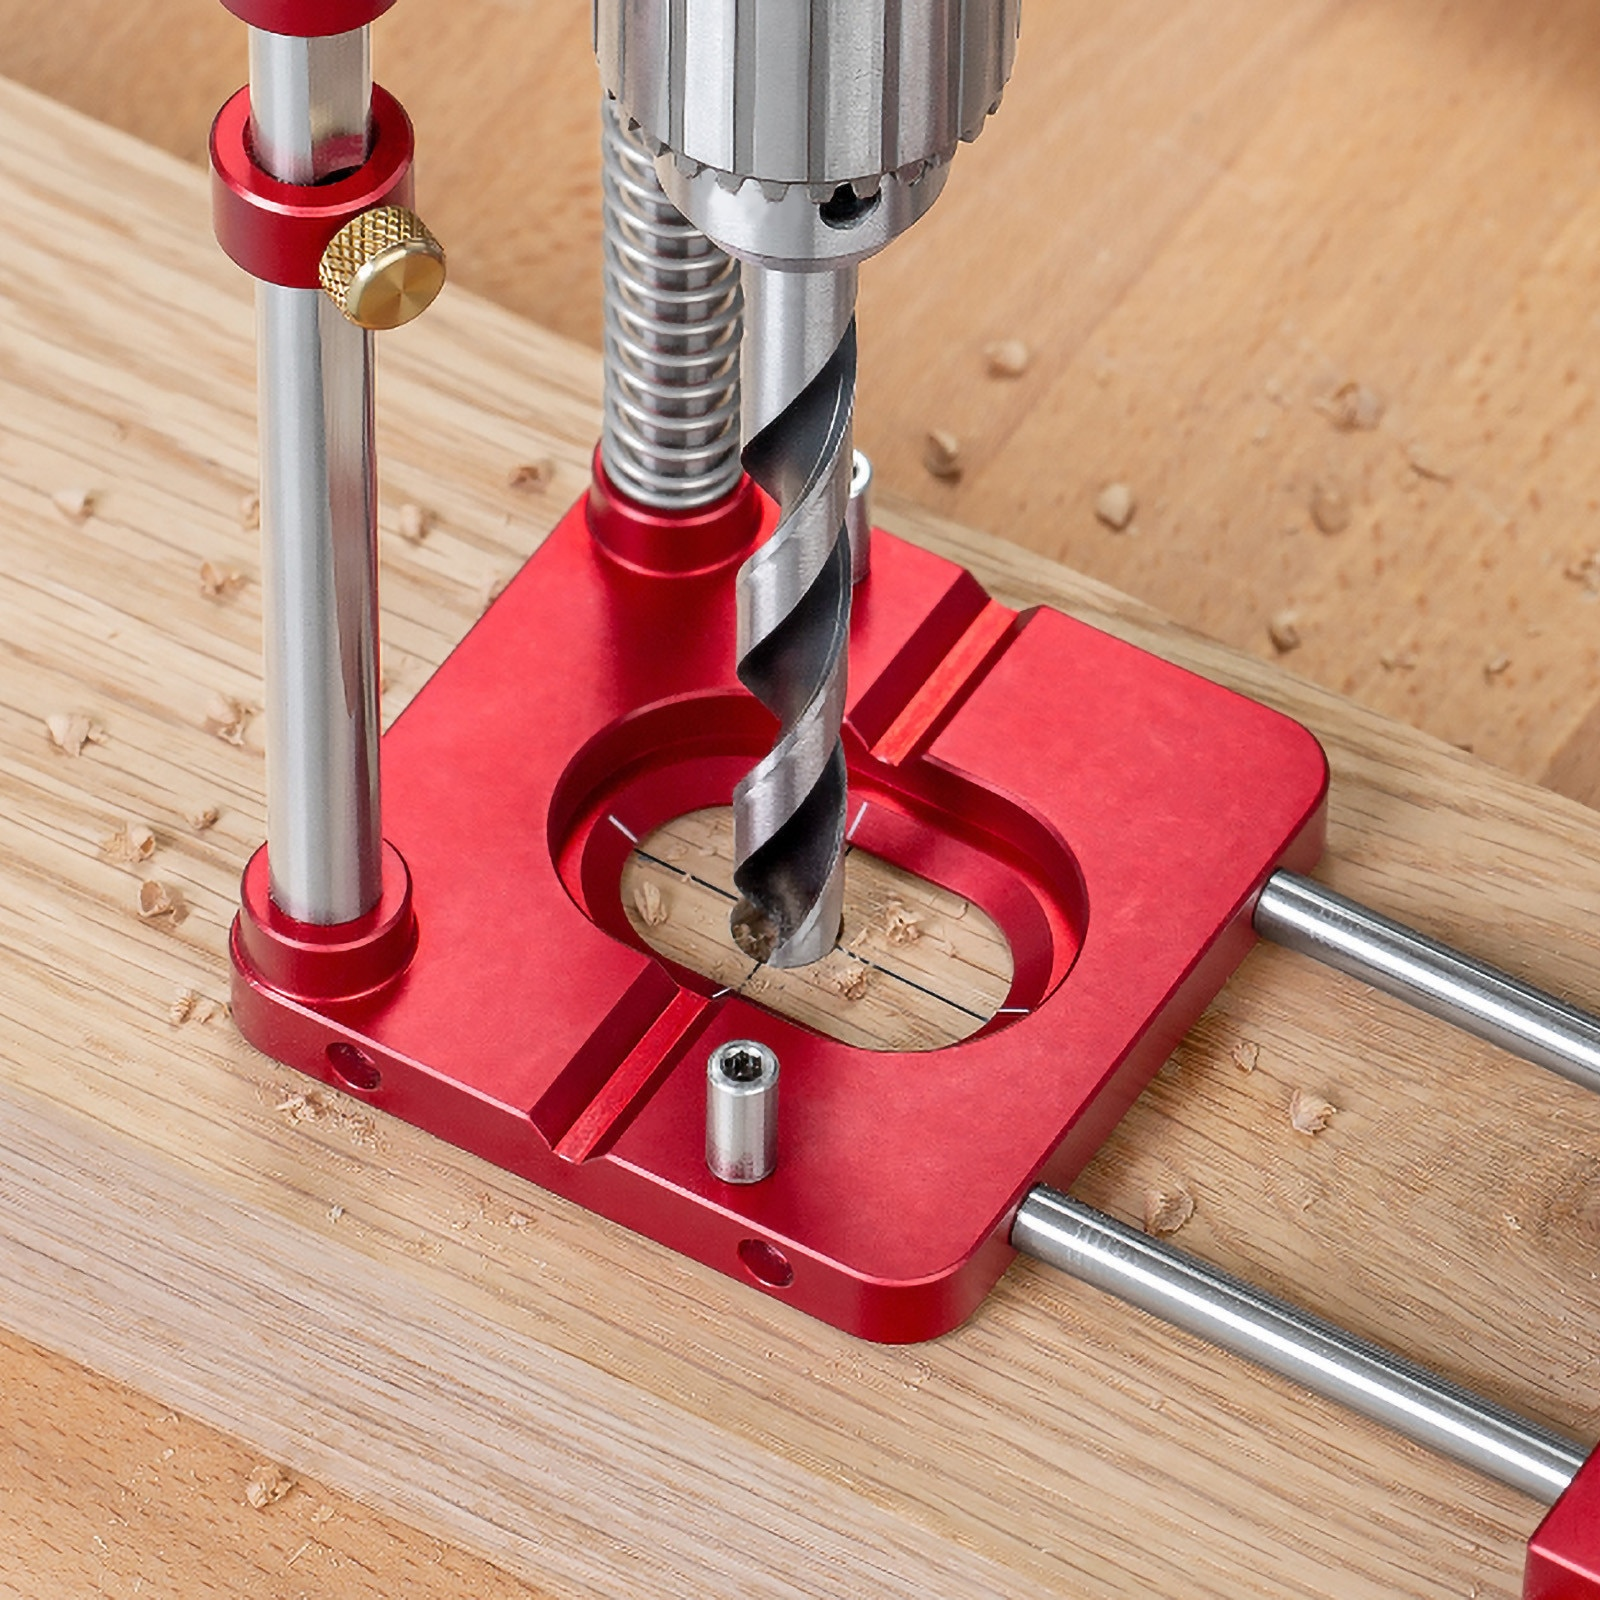 Woodworking Positioning Tool Portable Drill Locator Woodpeckers Precision Positioner Wood Boring Machine Machinery Fast Shipping